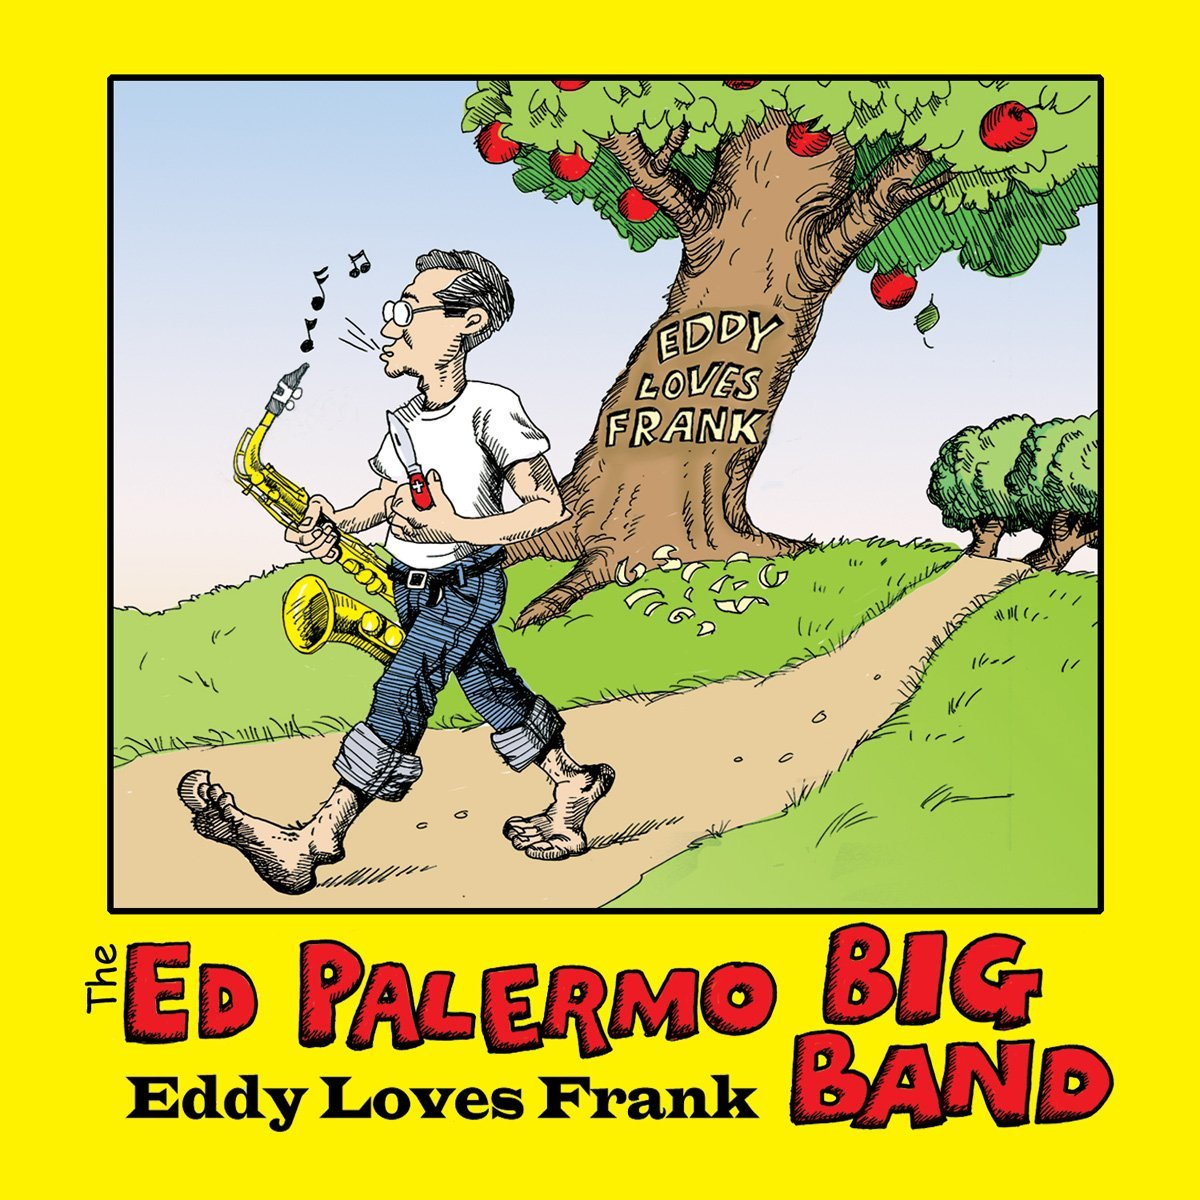 The Ed Palermo Big Band — Eddy Loves Frank